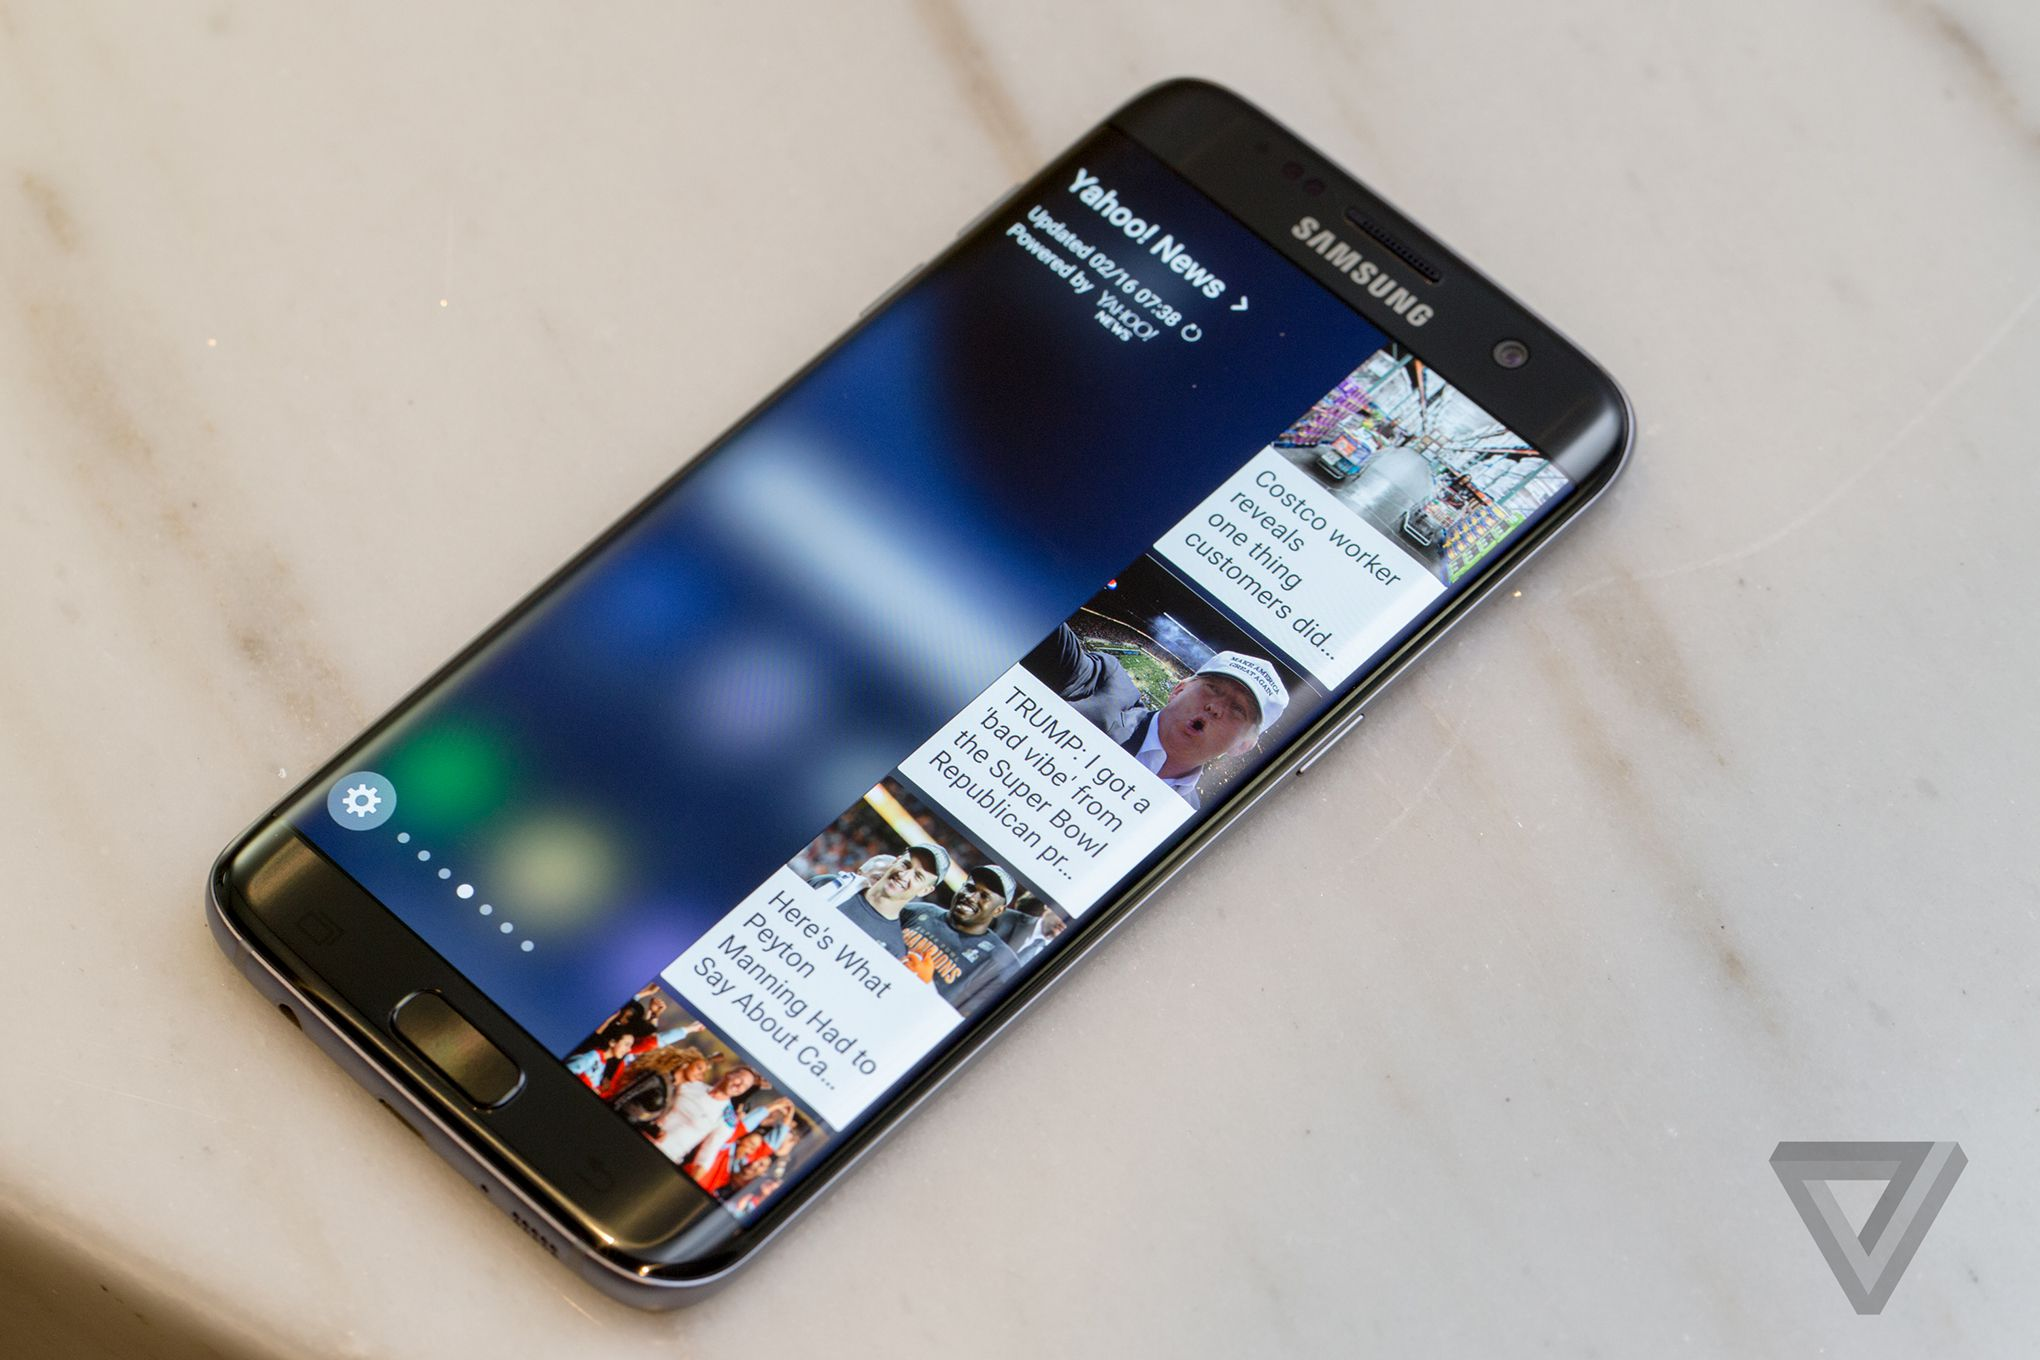 samsung-galaxy-s7-hands-on-sean-okane18_2040.0.0.jpg (2040×1360)